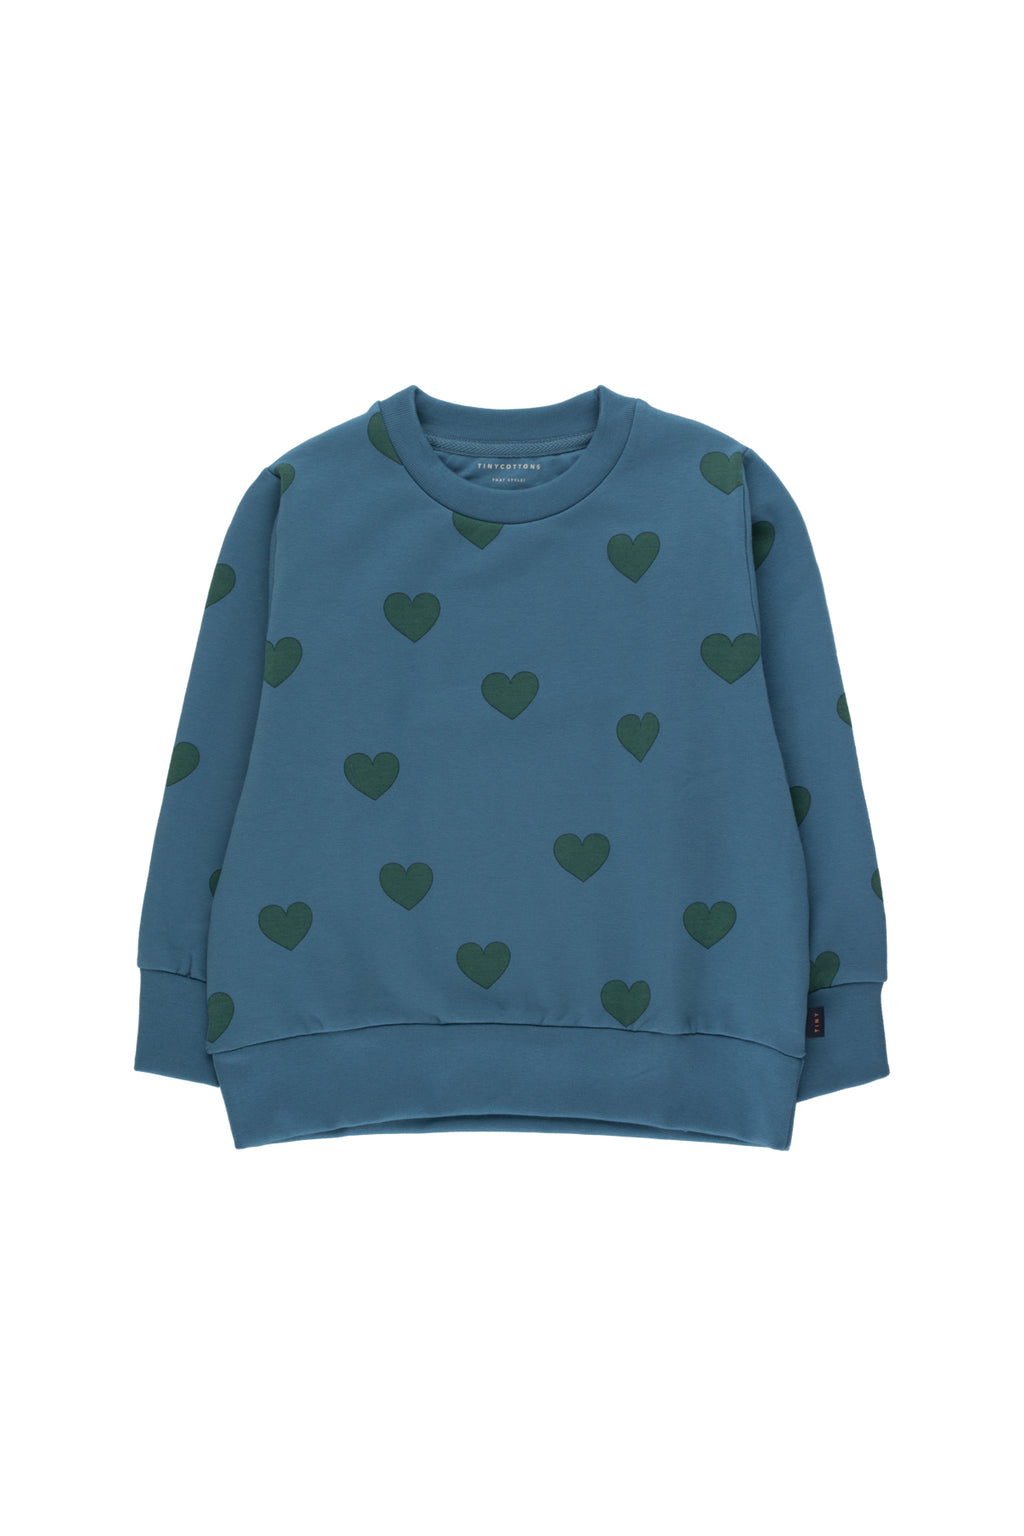 Tiny Cottons Hearts Sweatshirt - Sea Blue/Dark Green